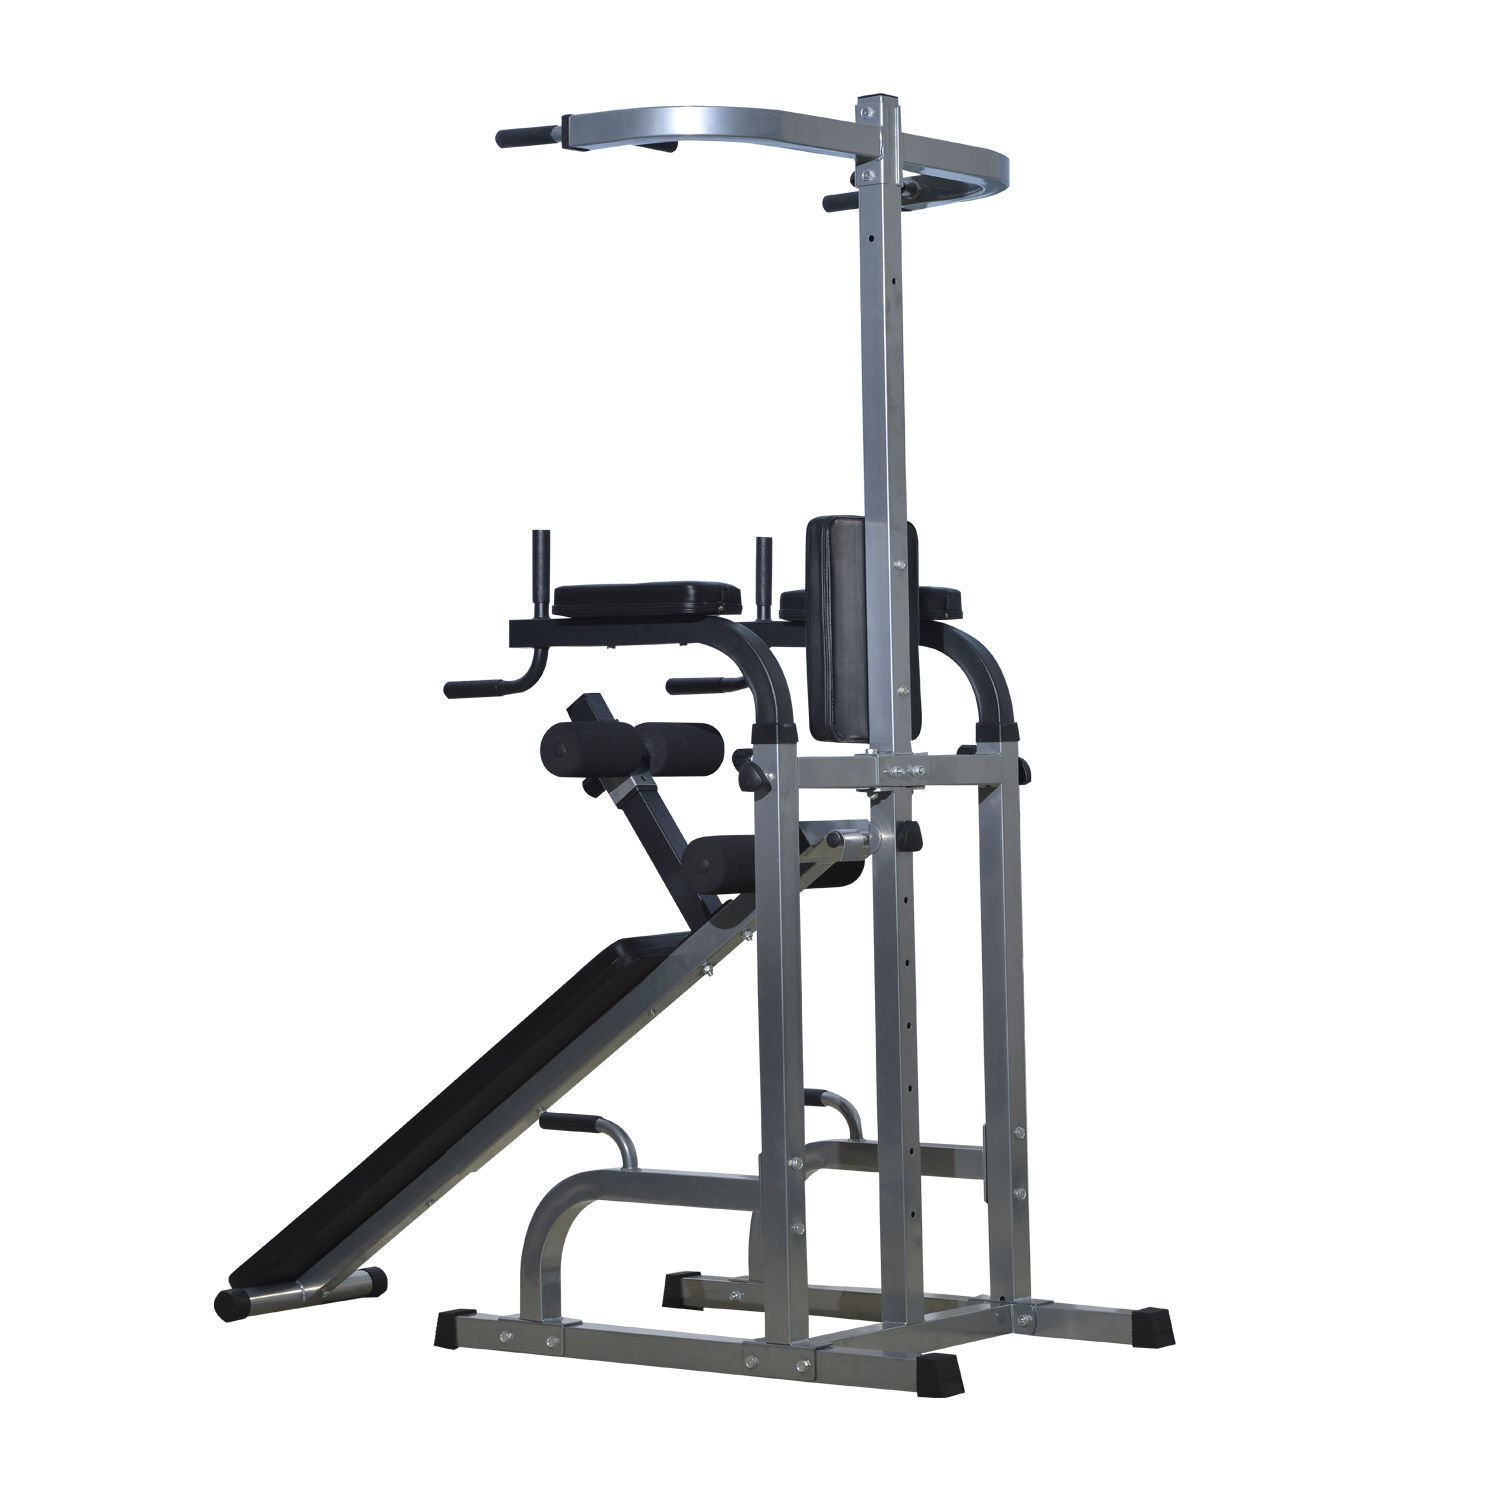 Home Gym Workout Strength Fitness Training Power Tower Dip Station Weight Bench by Happybeamy (Image #2)